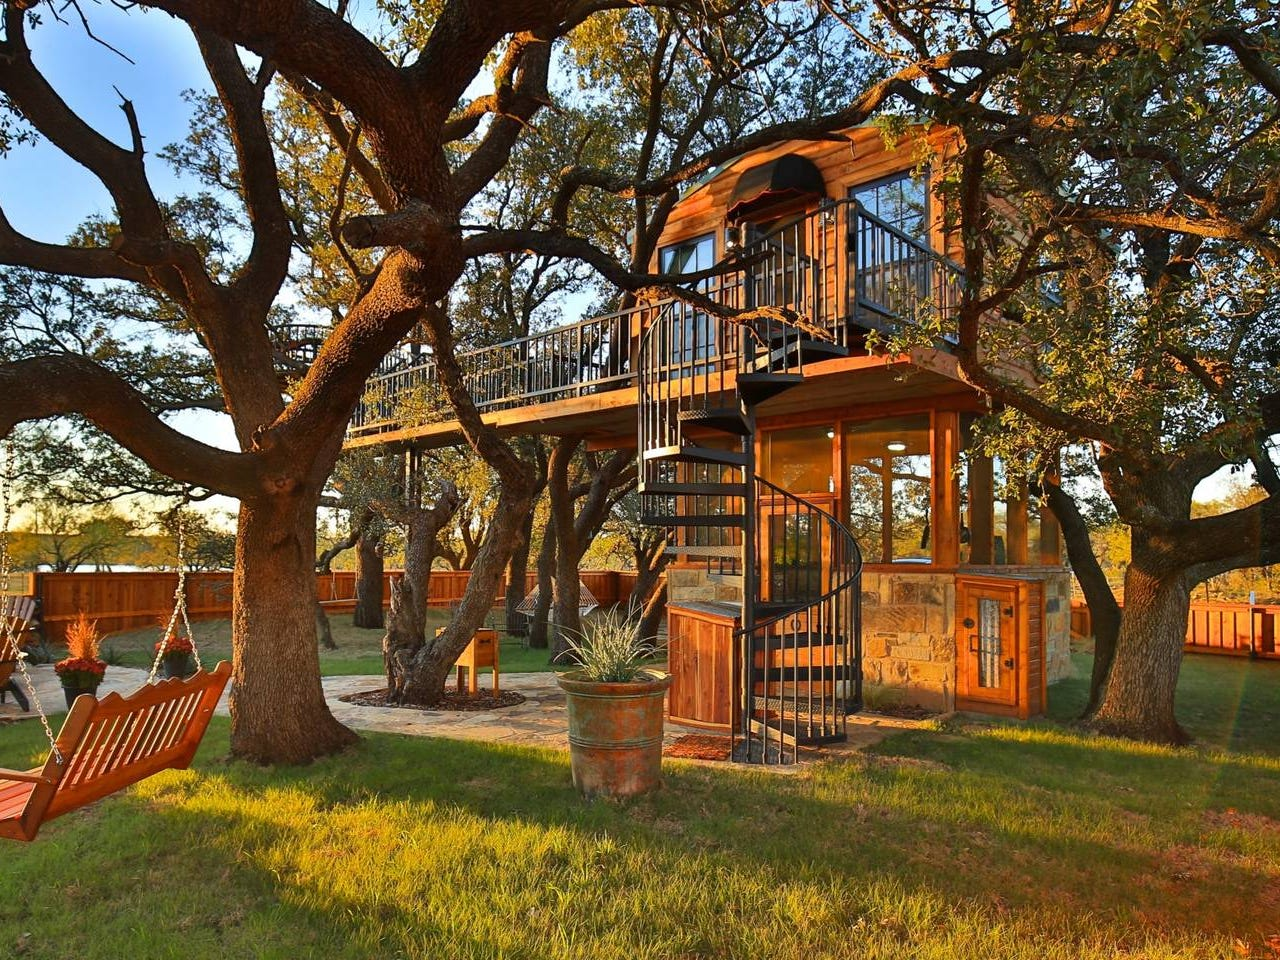 Ryder's Tree House is located on an 800-acre ranch in Baird, Texas. It features a private, relaxing atmosphere perfect for any weekend getaway.